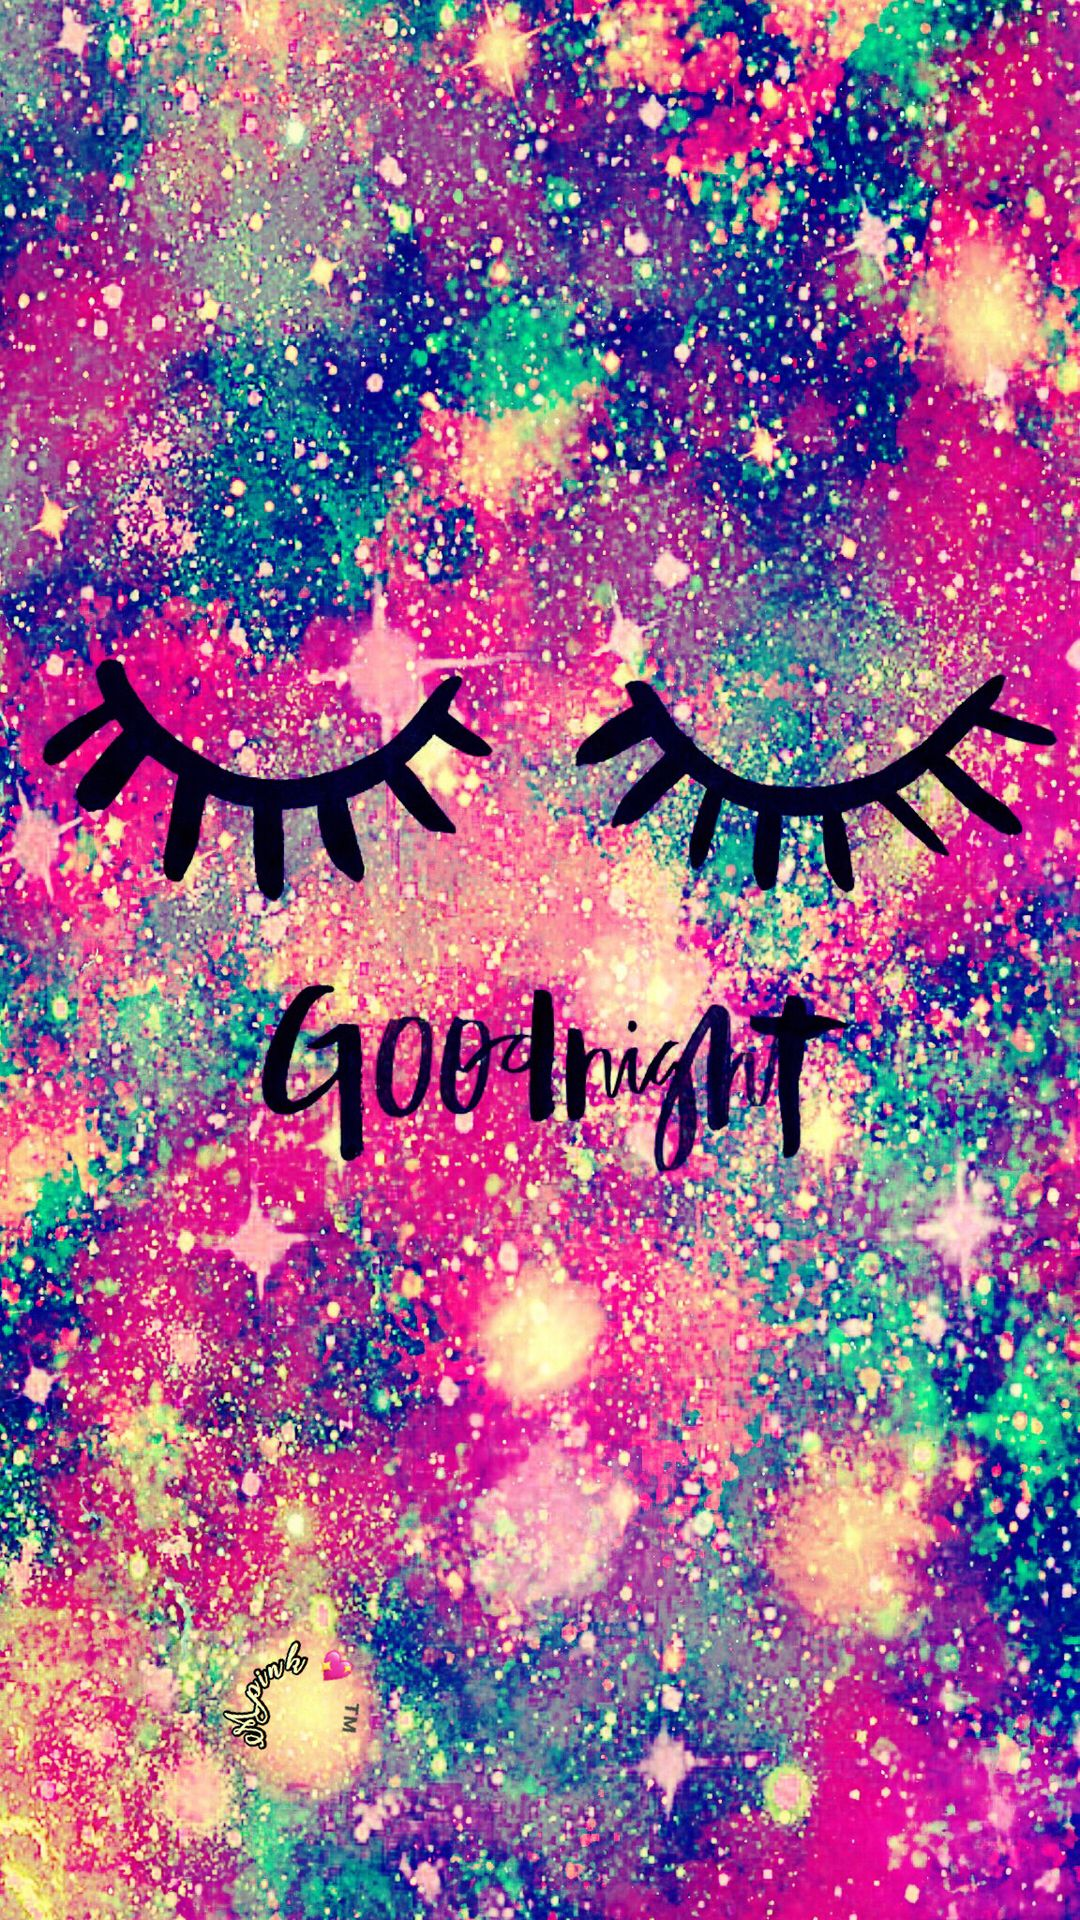 Good Night Galaxy Wallpaper Androidwallpaper Iphonewallpaper